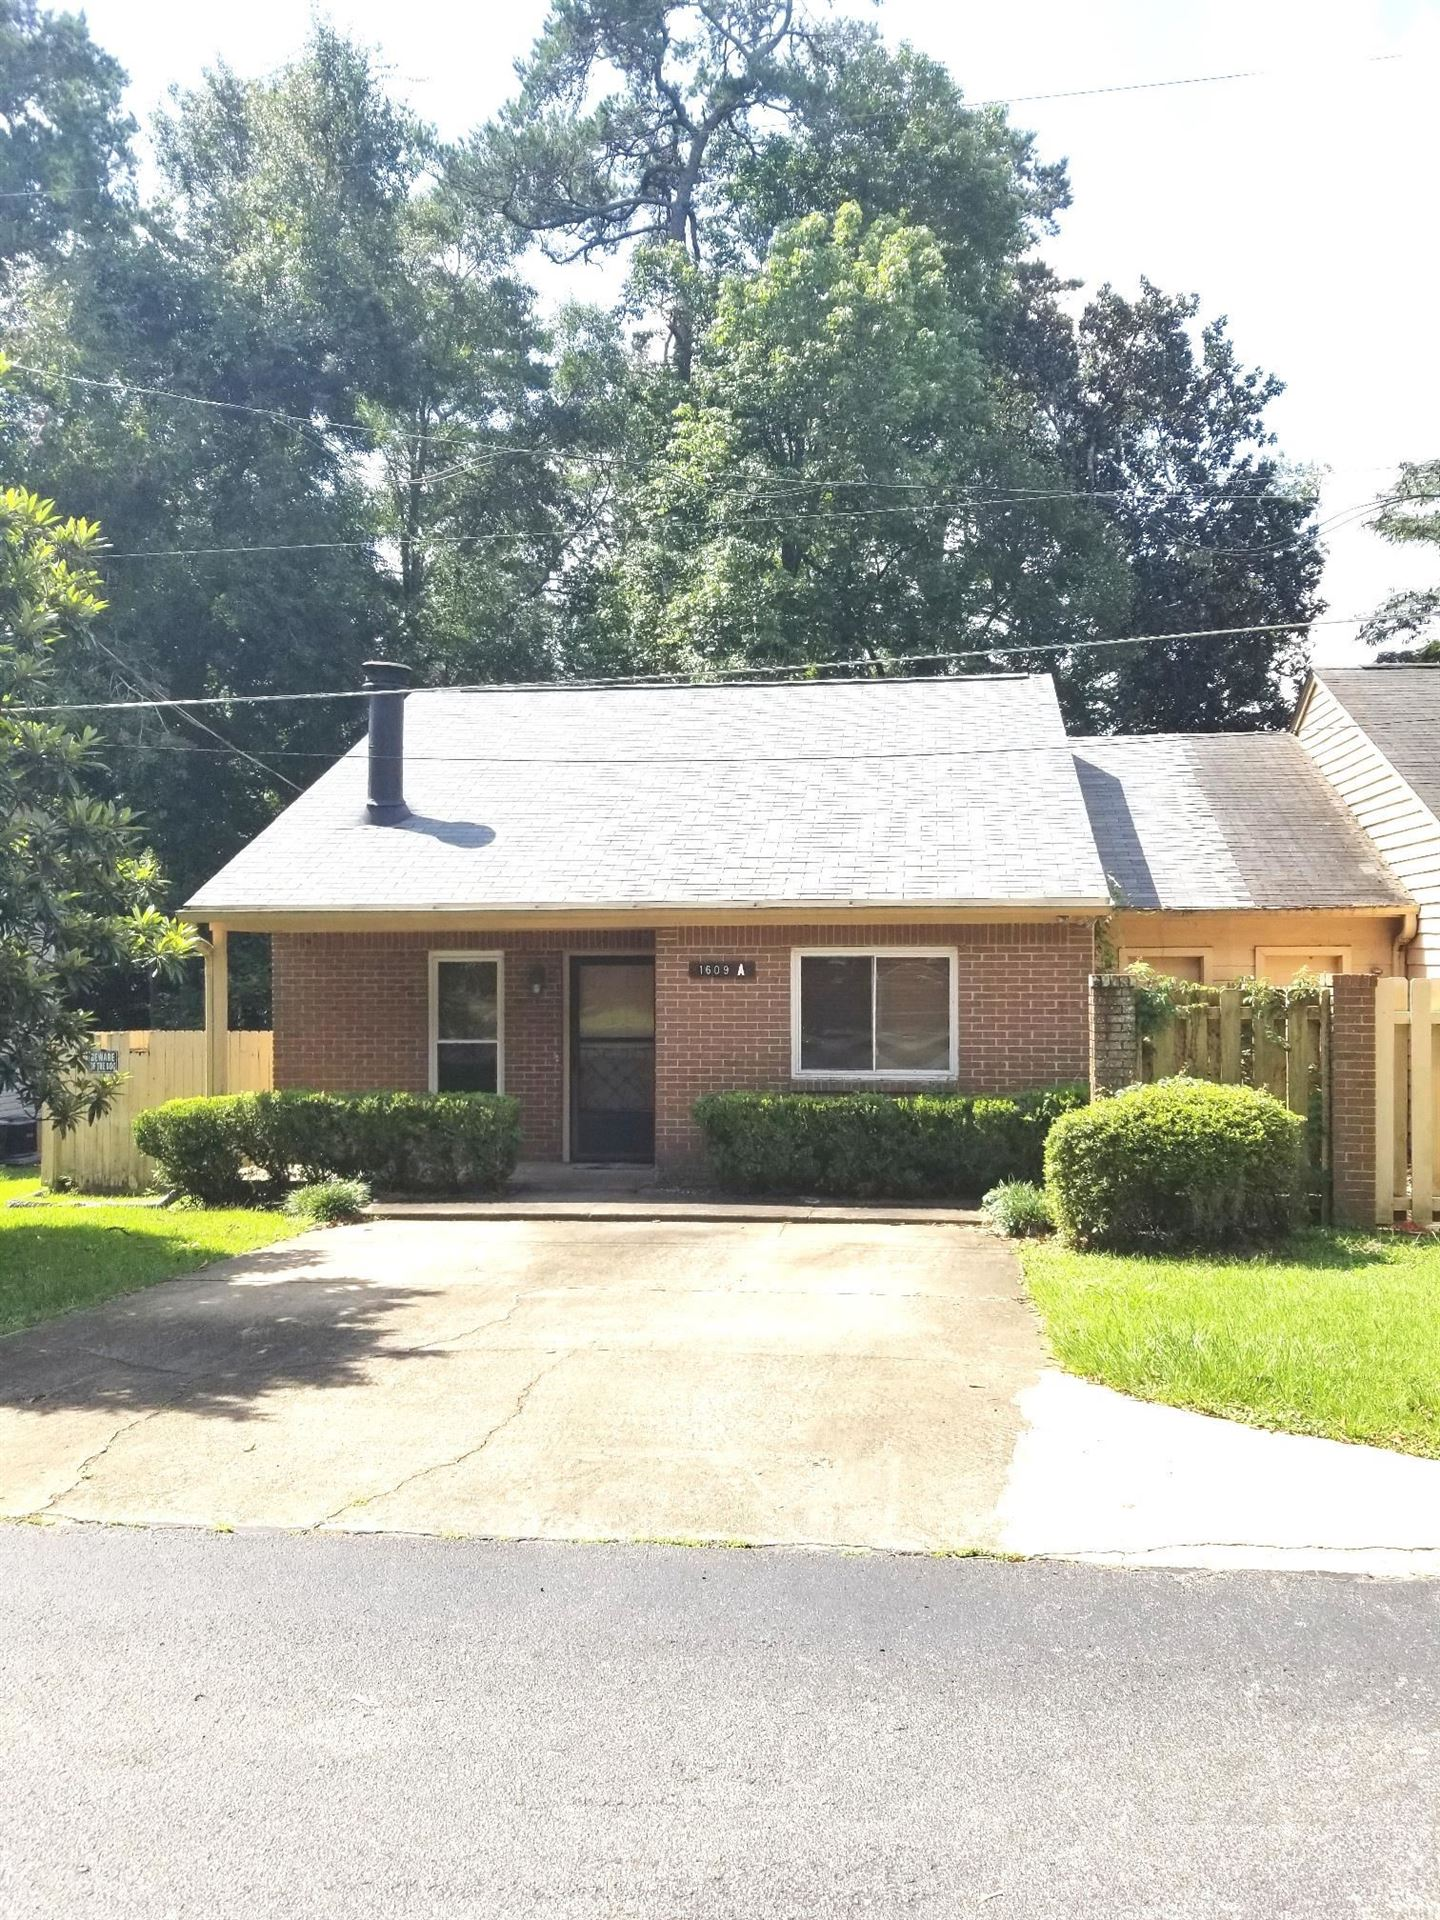 Photo of 1609 Willow Bend Way #A, TALLAHASSEE, FL 32301 (MLS # 336524)